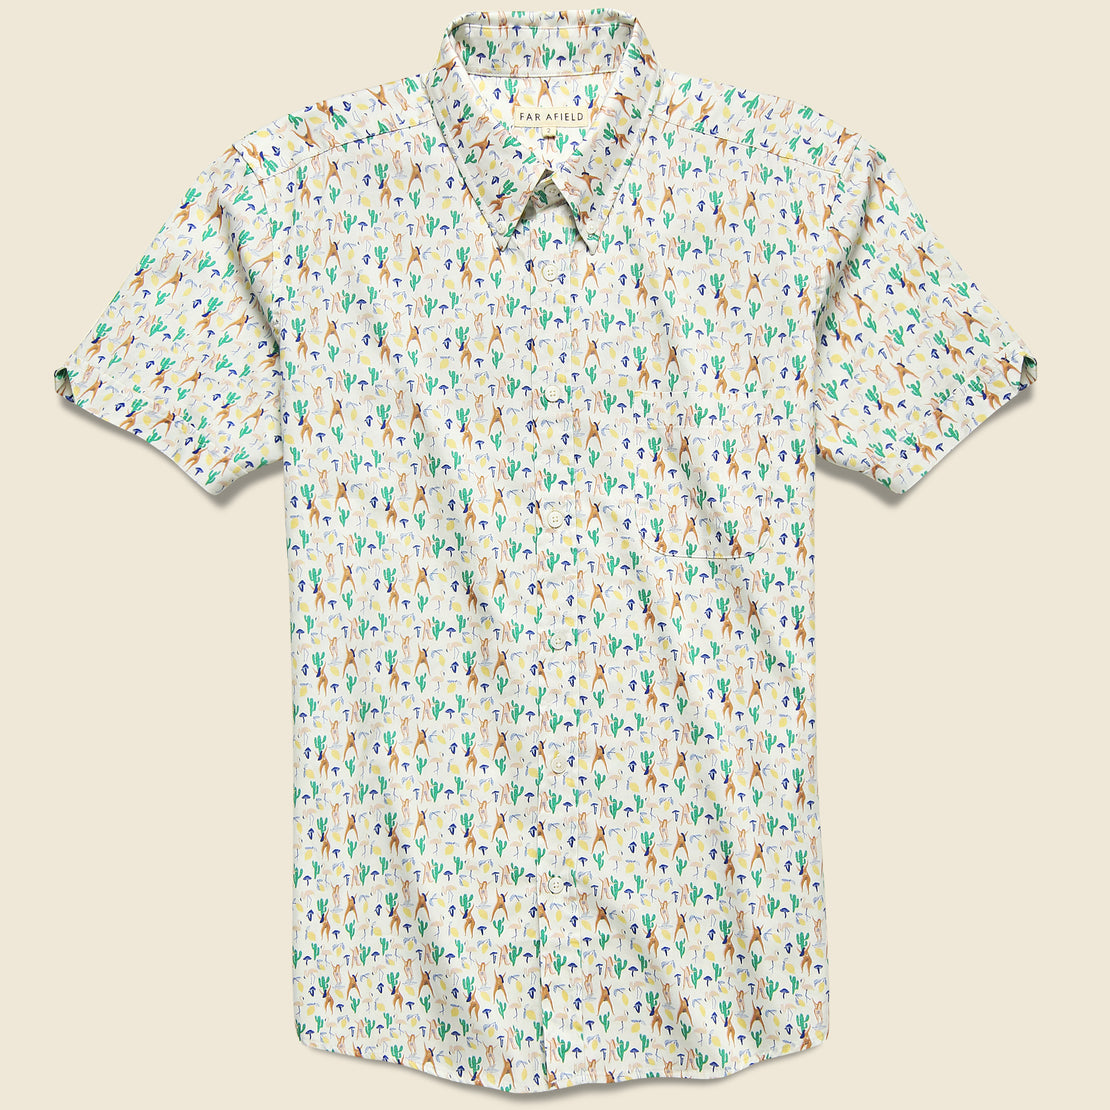 Far Afield Mod Button Down Shirt - Hippies